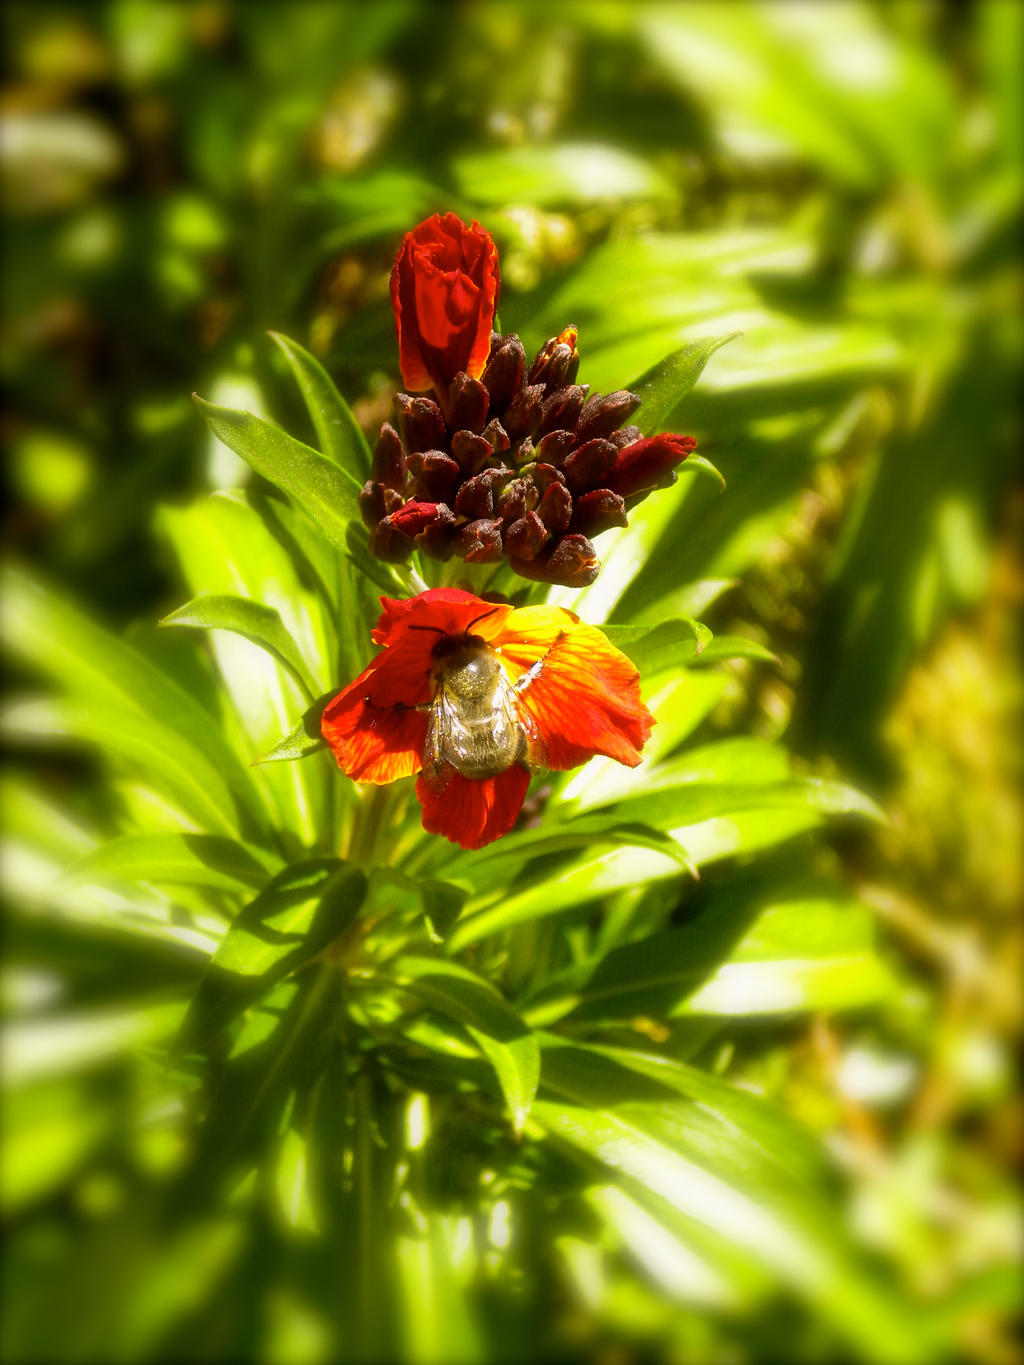 Bumblebee on a red flower by montmartre96